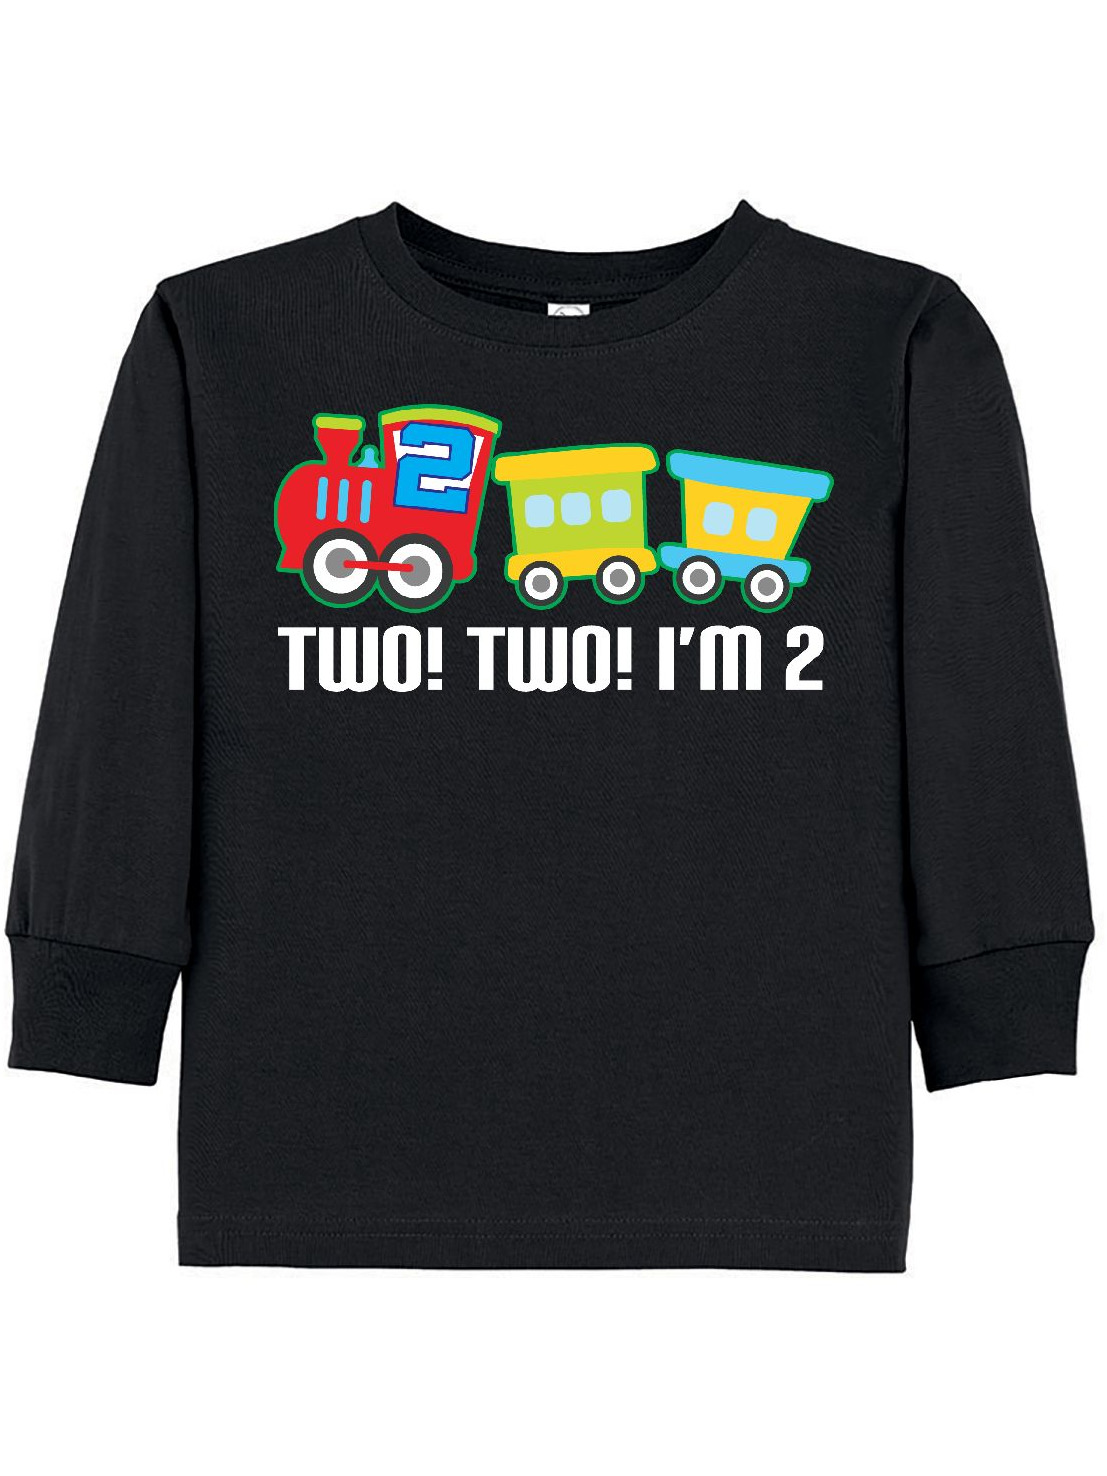 2nd Birthday Two Two Train Outfit Toddler Long Sleeve T-Shirt